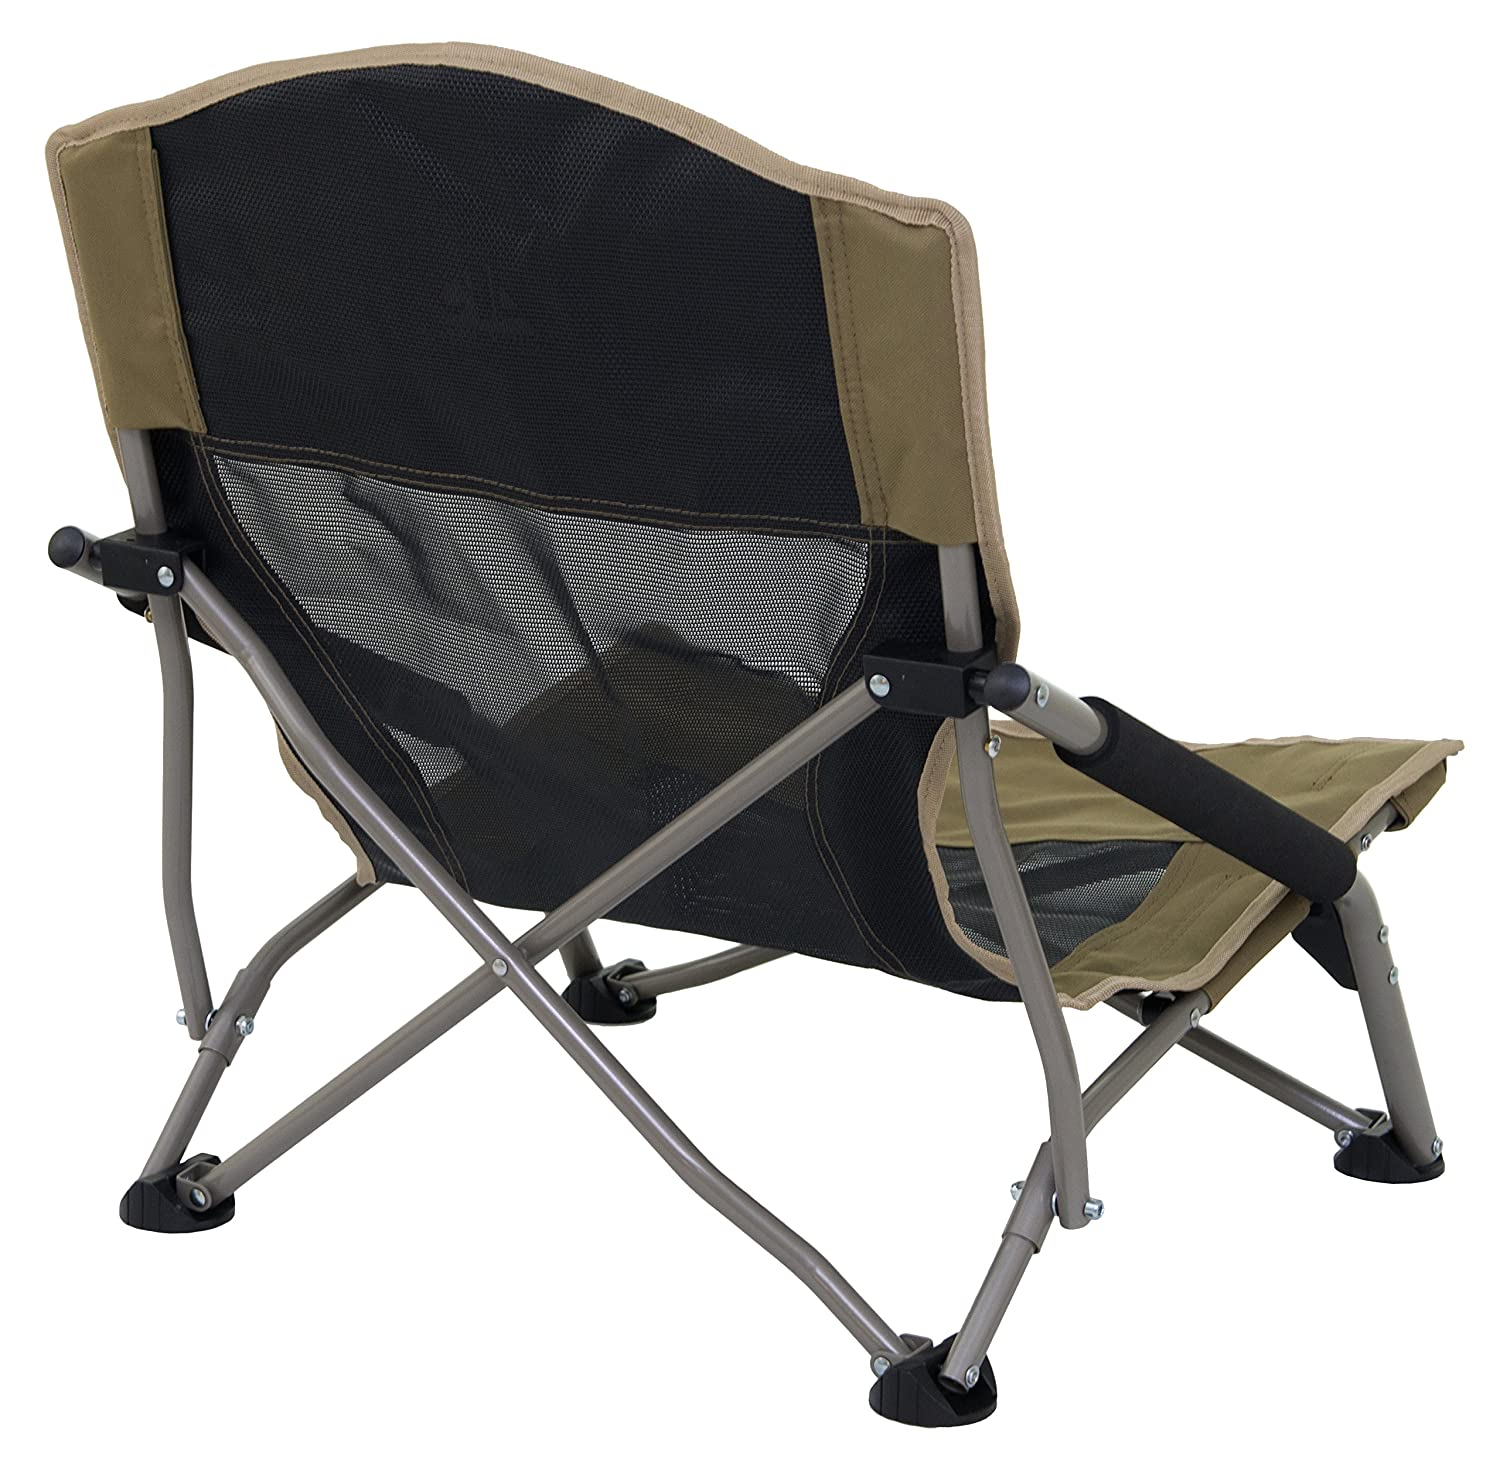 Folding Chair With Arms Camping Folding Carry Bag Chairs Travel Sport Picnic Beach